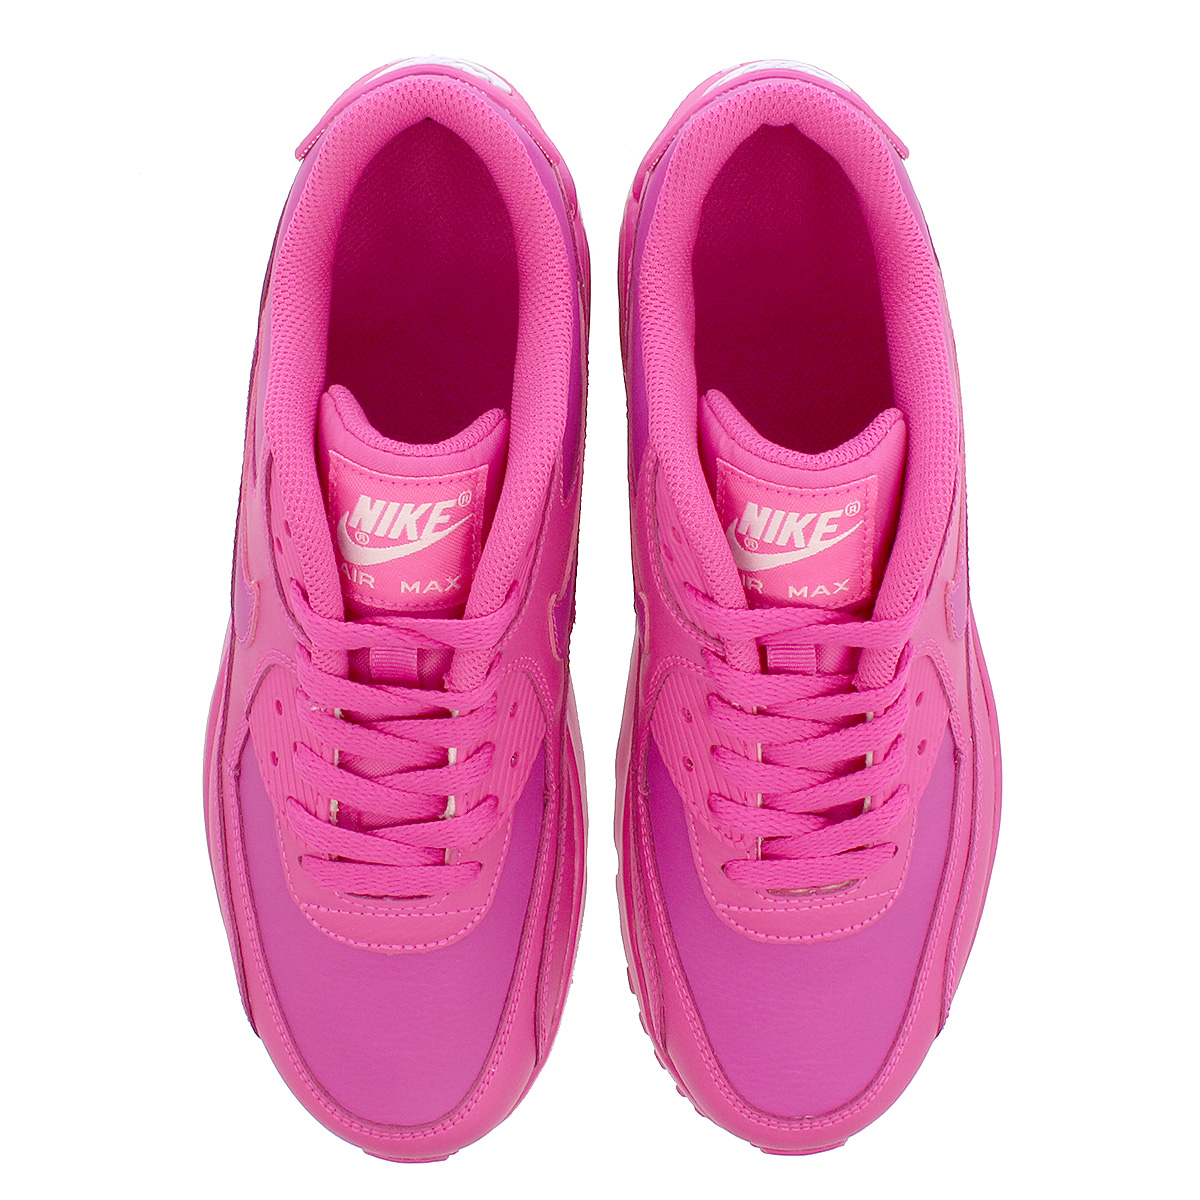 reputable site ff660 c55bd ... NIKE AIR MAX 90 LTR GS Kie Ney AMAX 90 leather GS LASER FUCHSIA LASER  ...